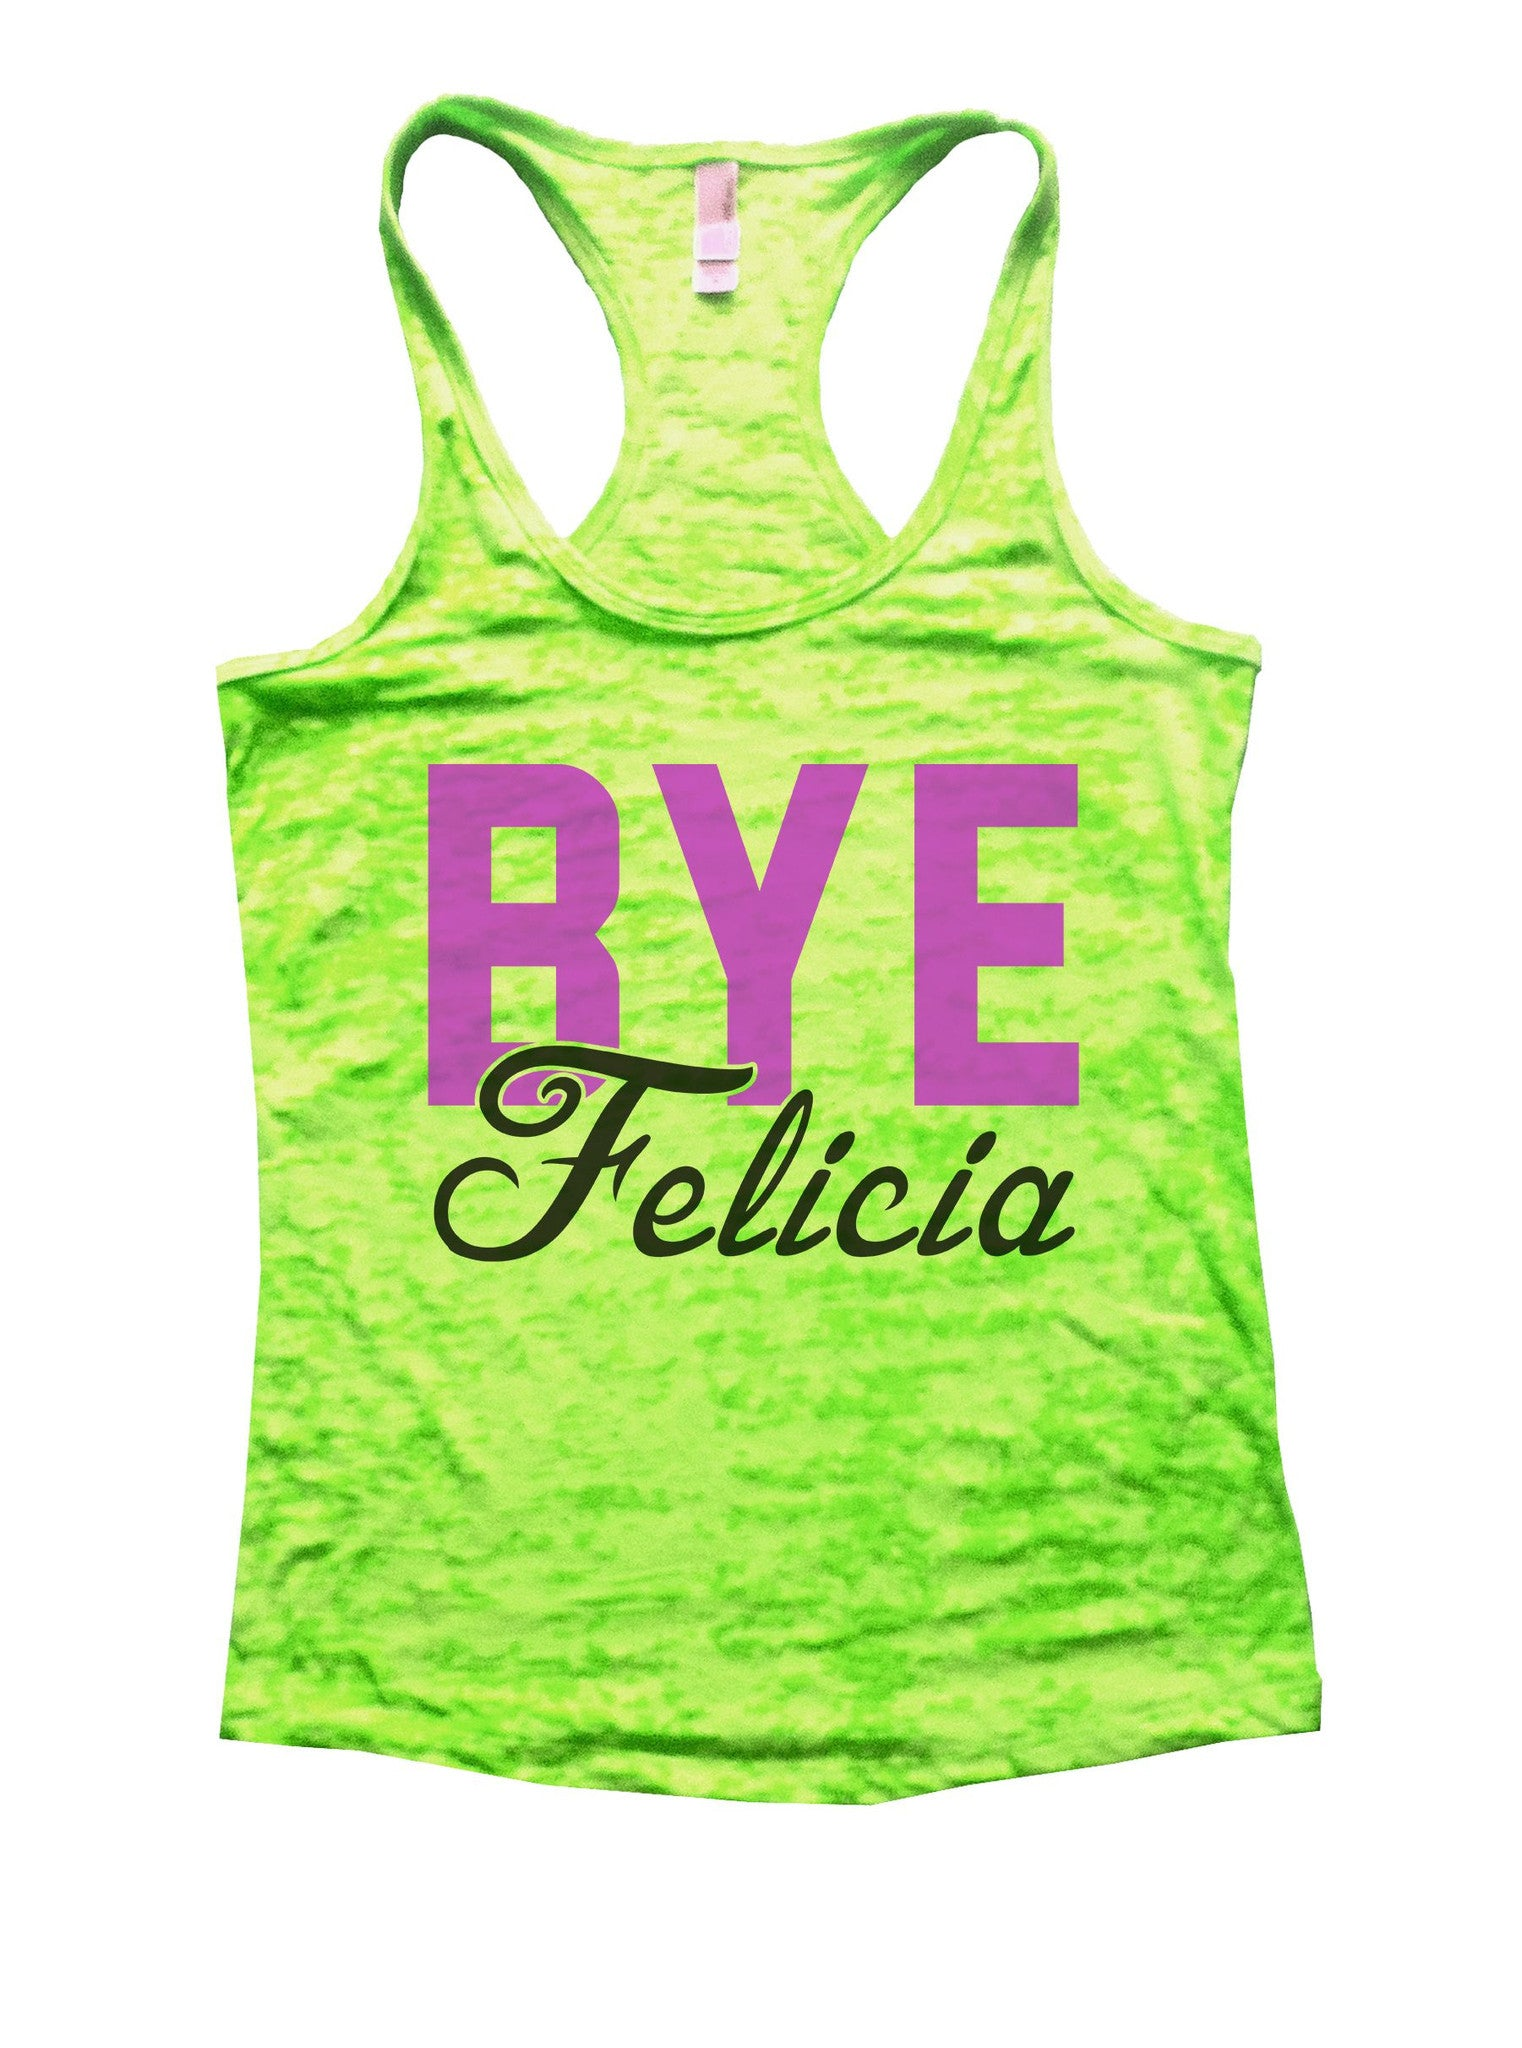 Bye Felicia Burnout Tank Top By BurnoutTankTops.com - 1092 - Funny Shirts Tank Tops Burnouts and Triblends  - 1